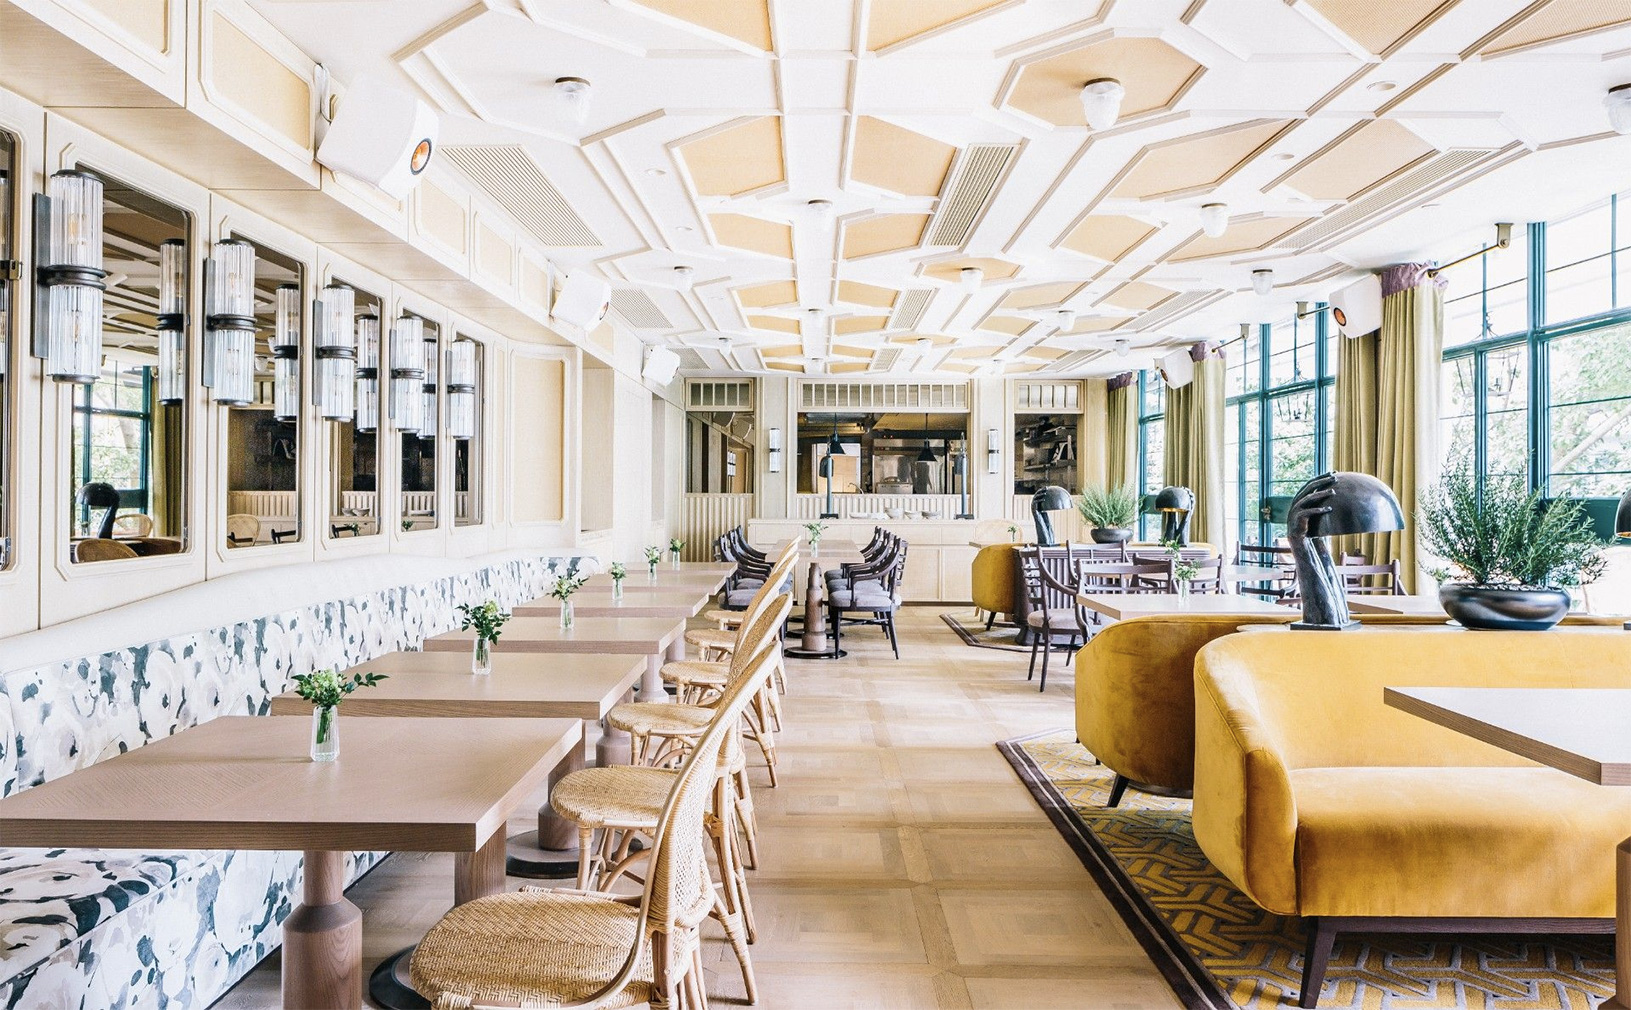 The Franco-tropical interiors of new Hong Kong restaurant Louise